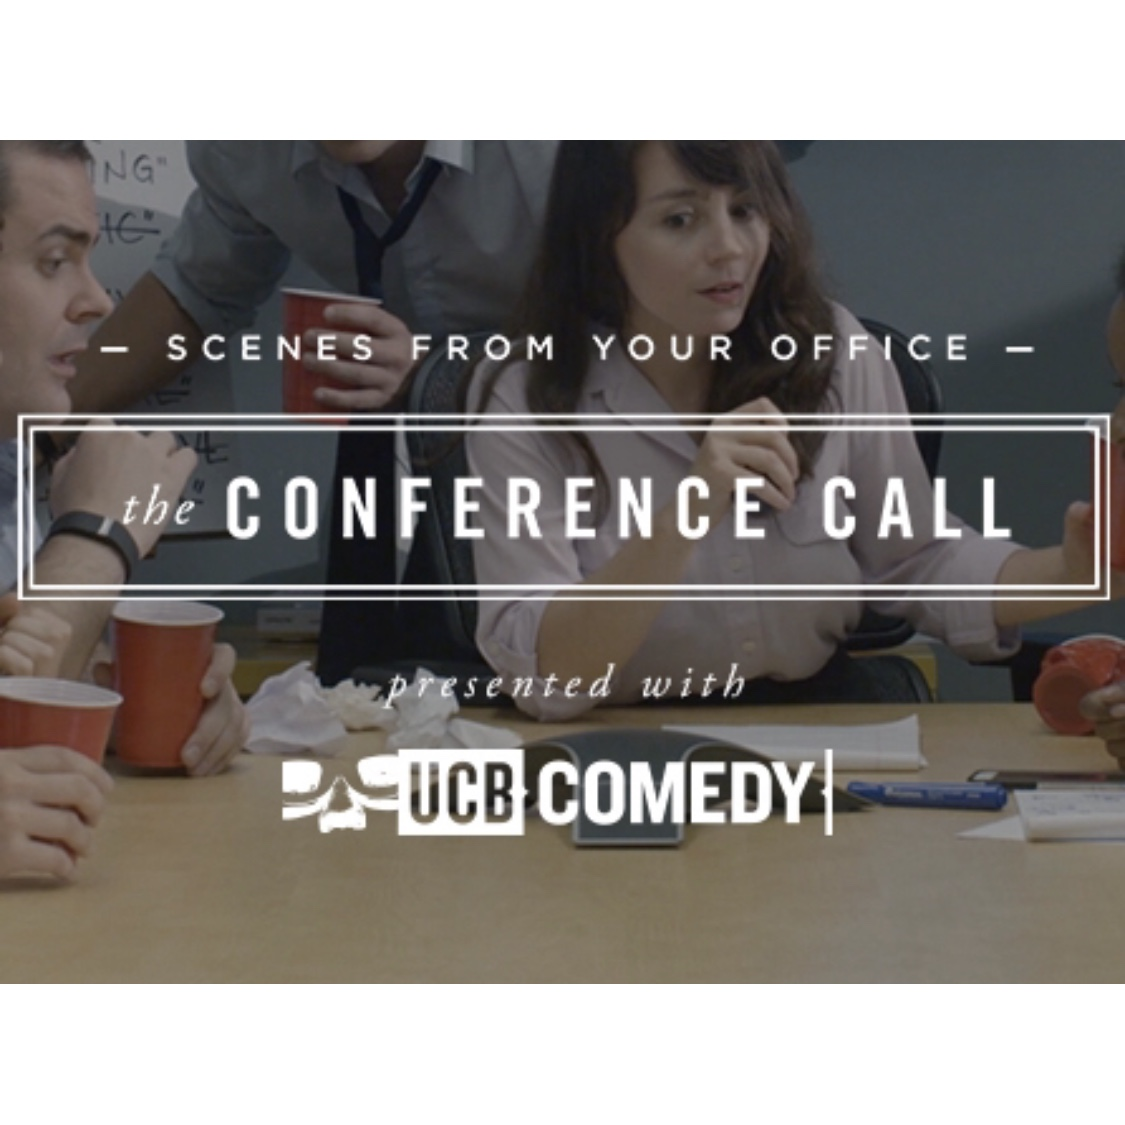 UCB Comedy's Advertising Week Campaign | Credits: Mixing, Music Composition